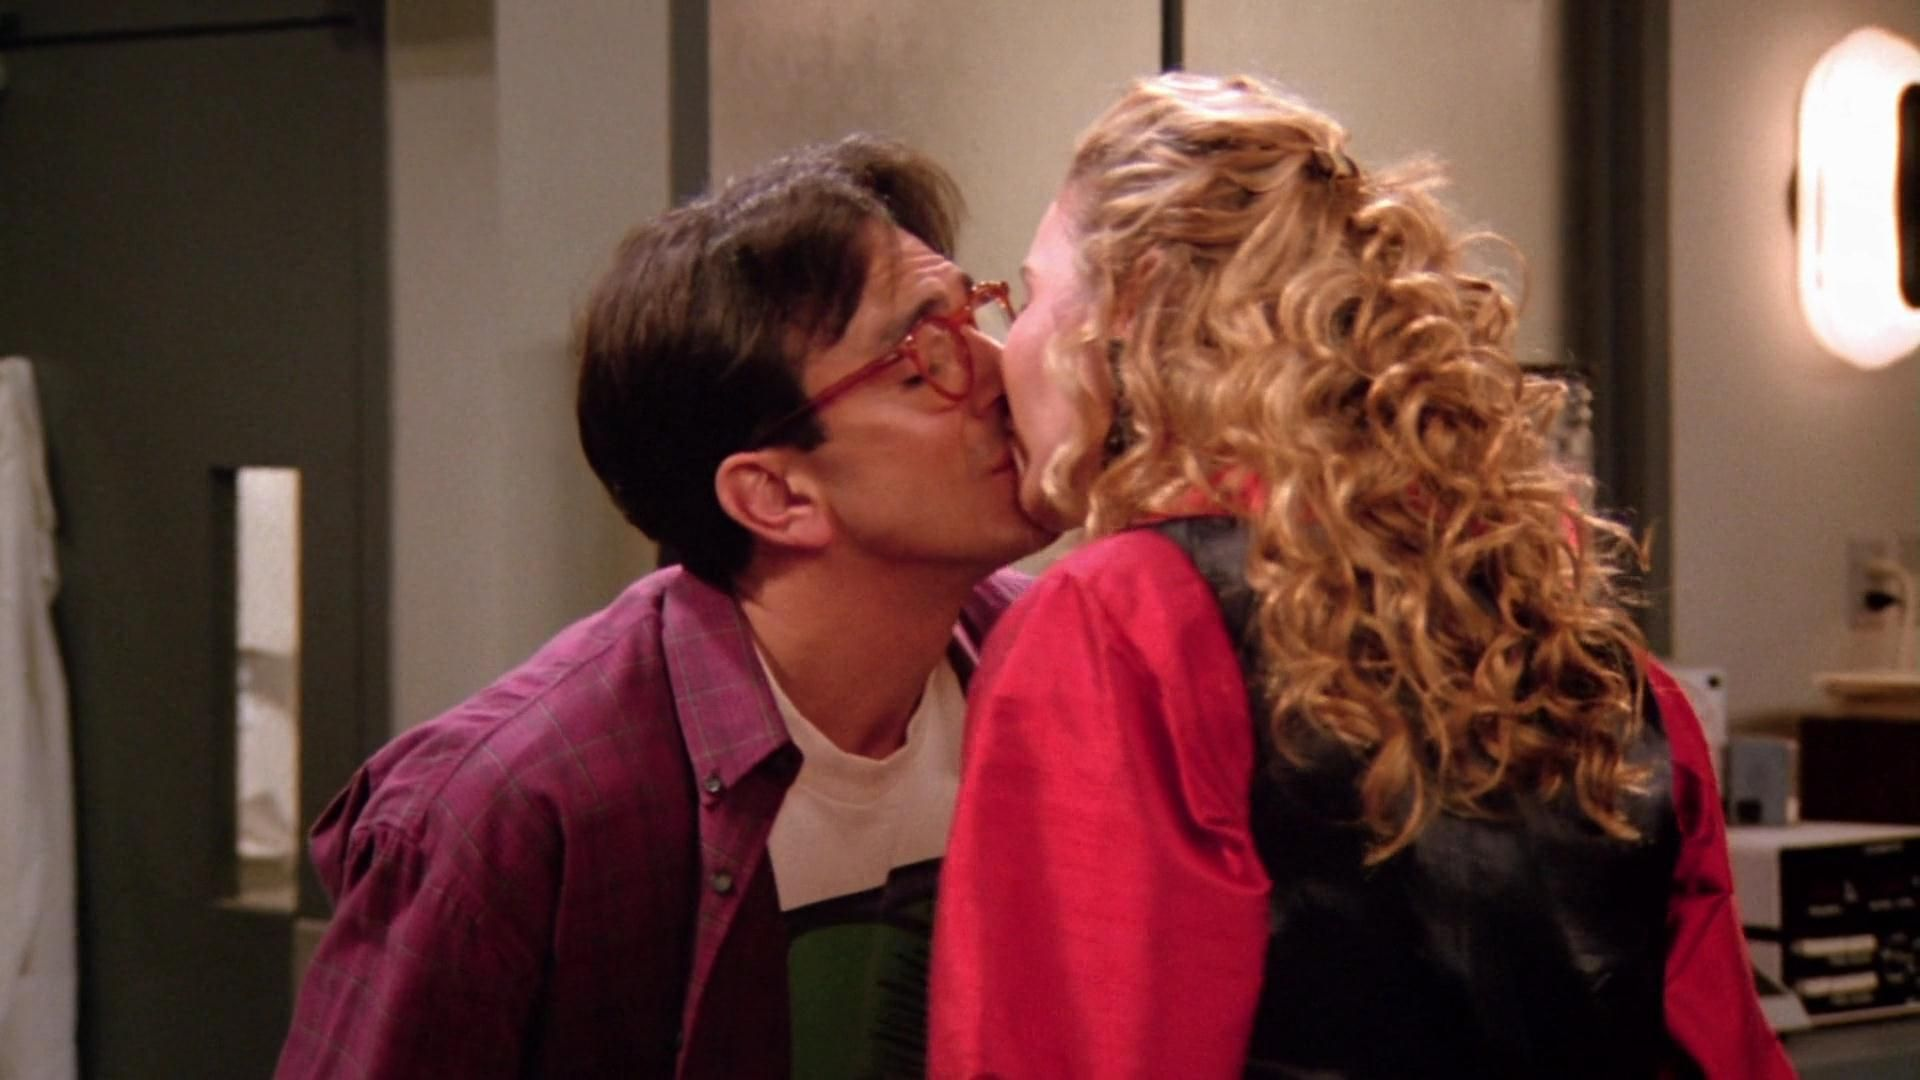 first kiss before dating